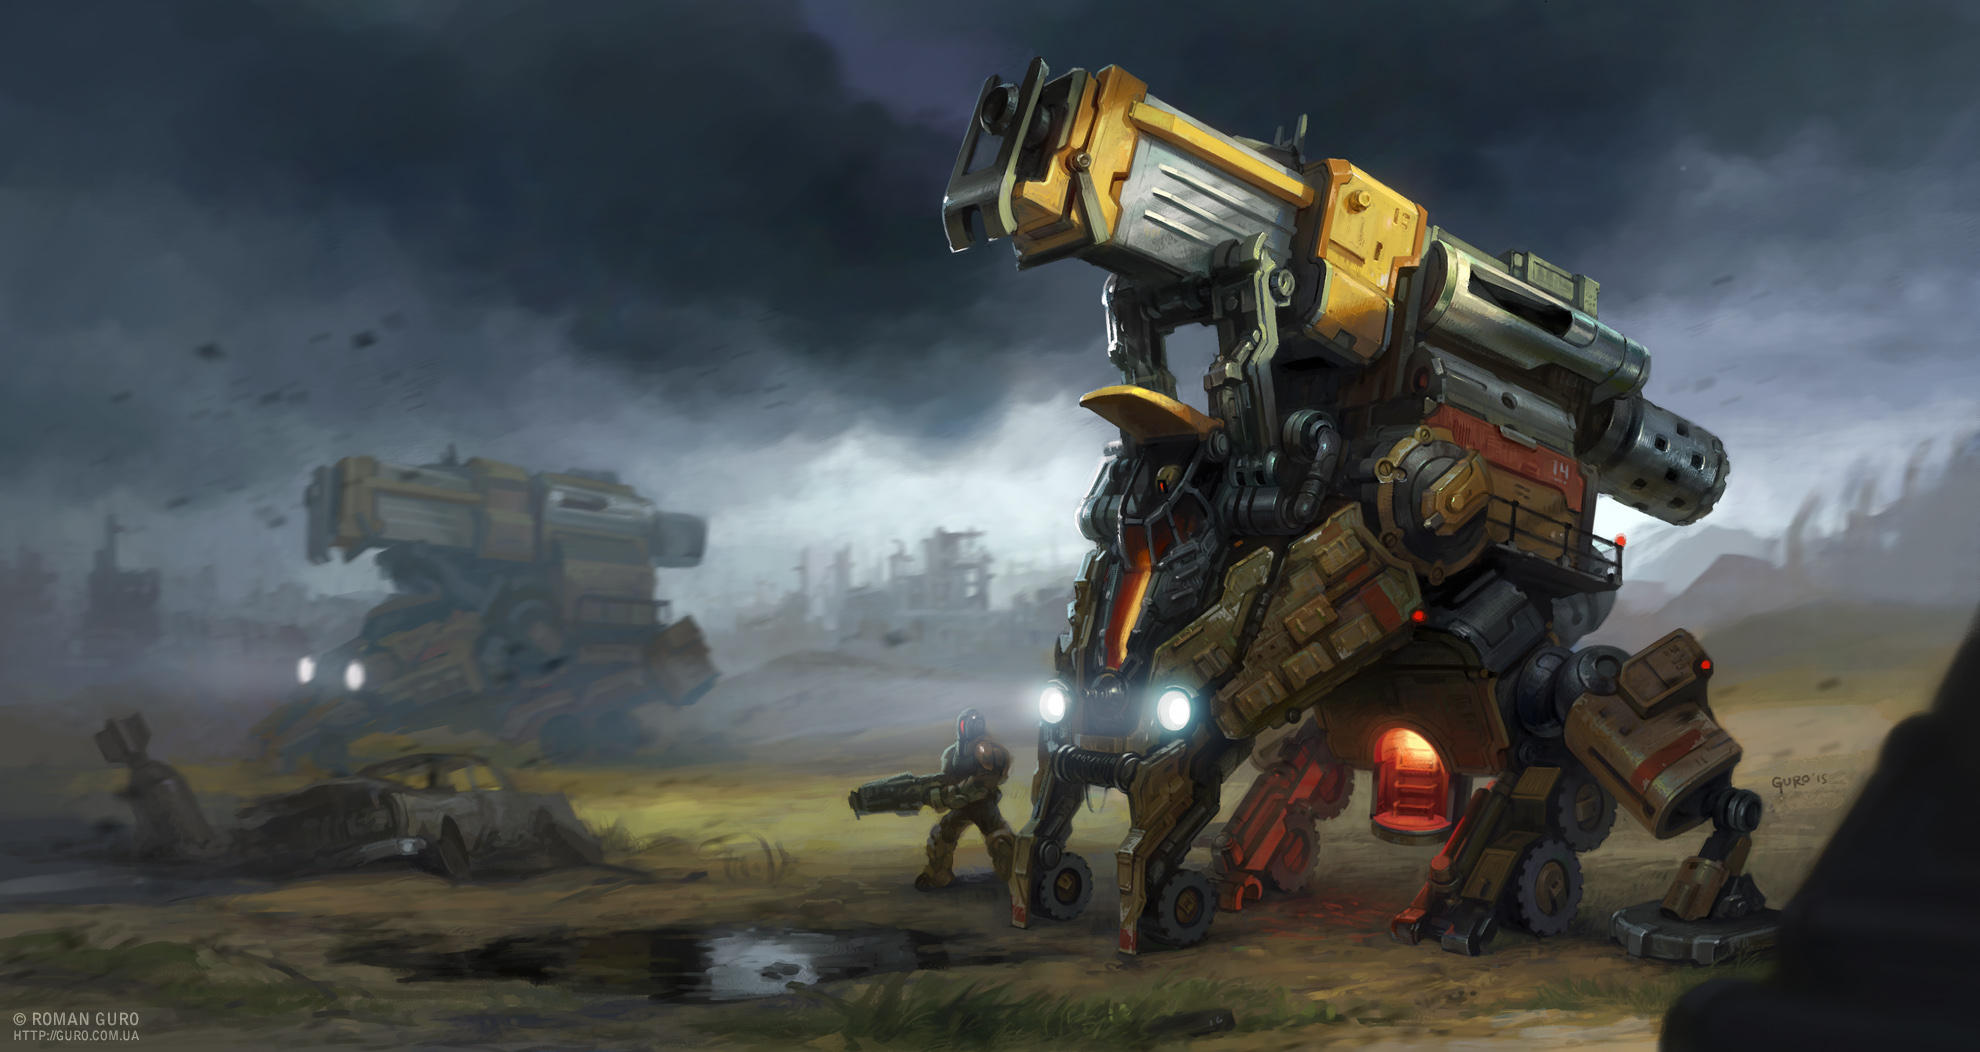 Mecha concept by Guro